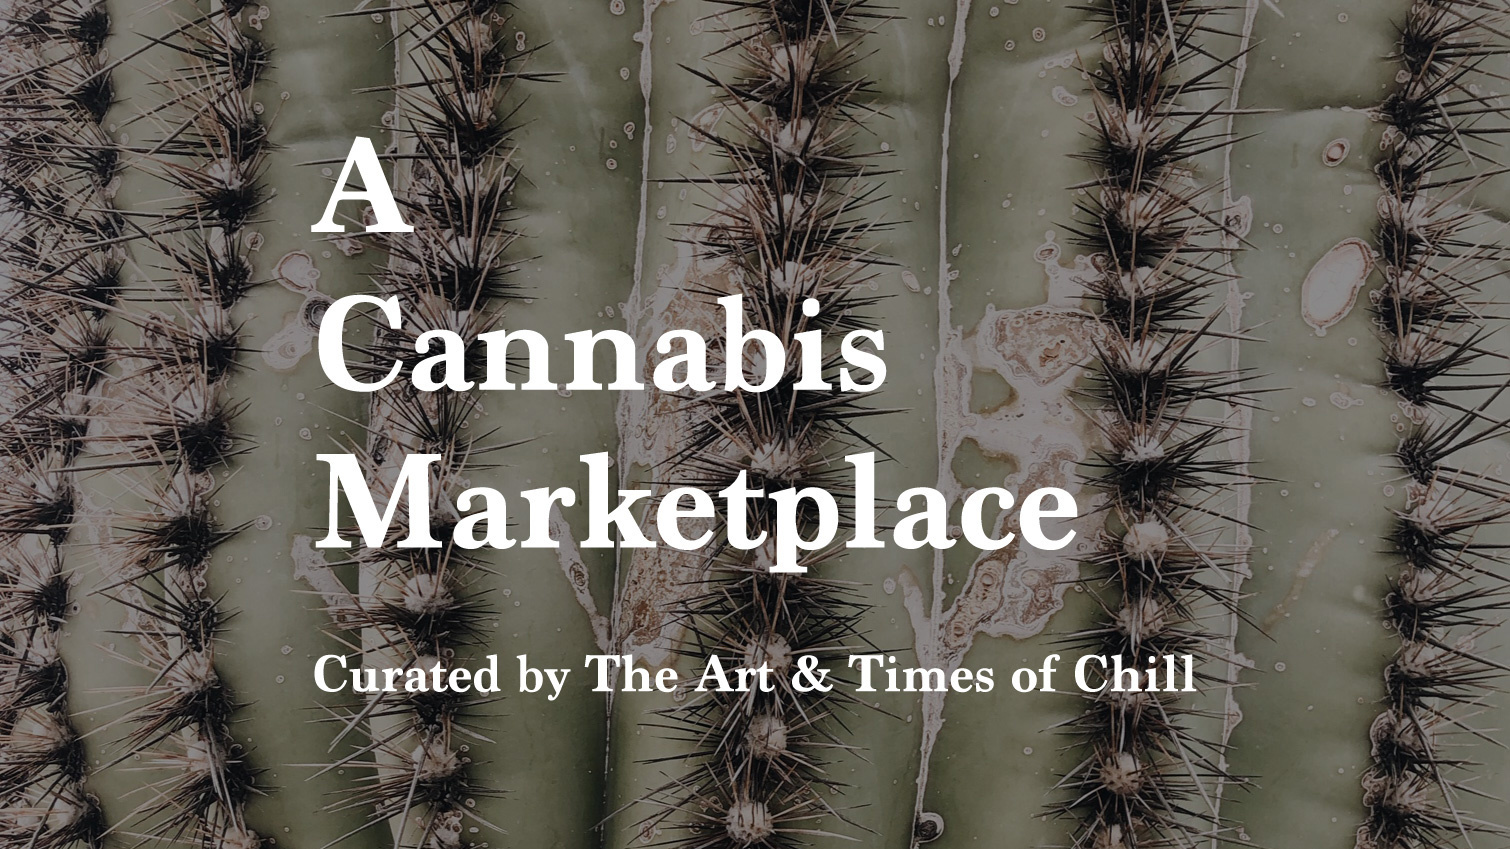 A Cannabis Marketplace